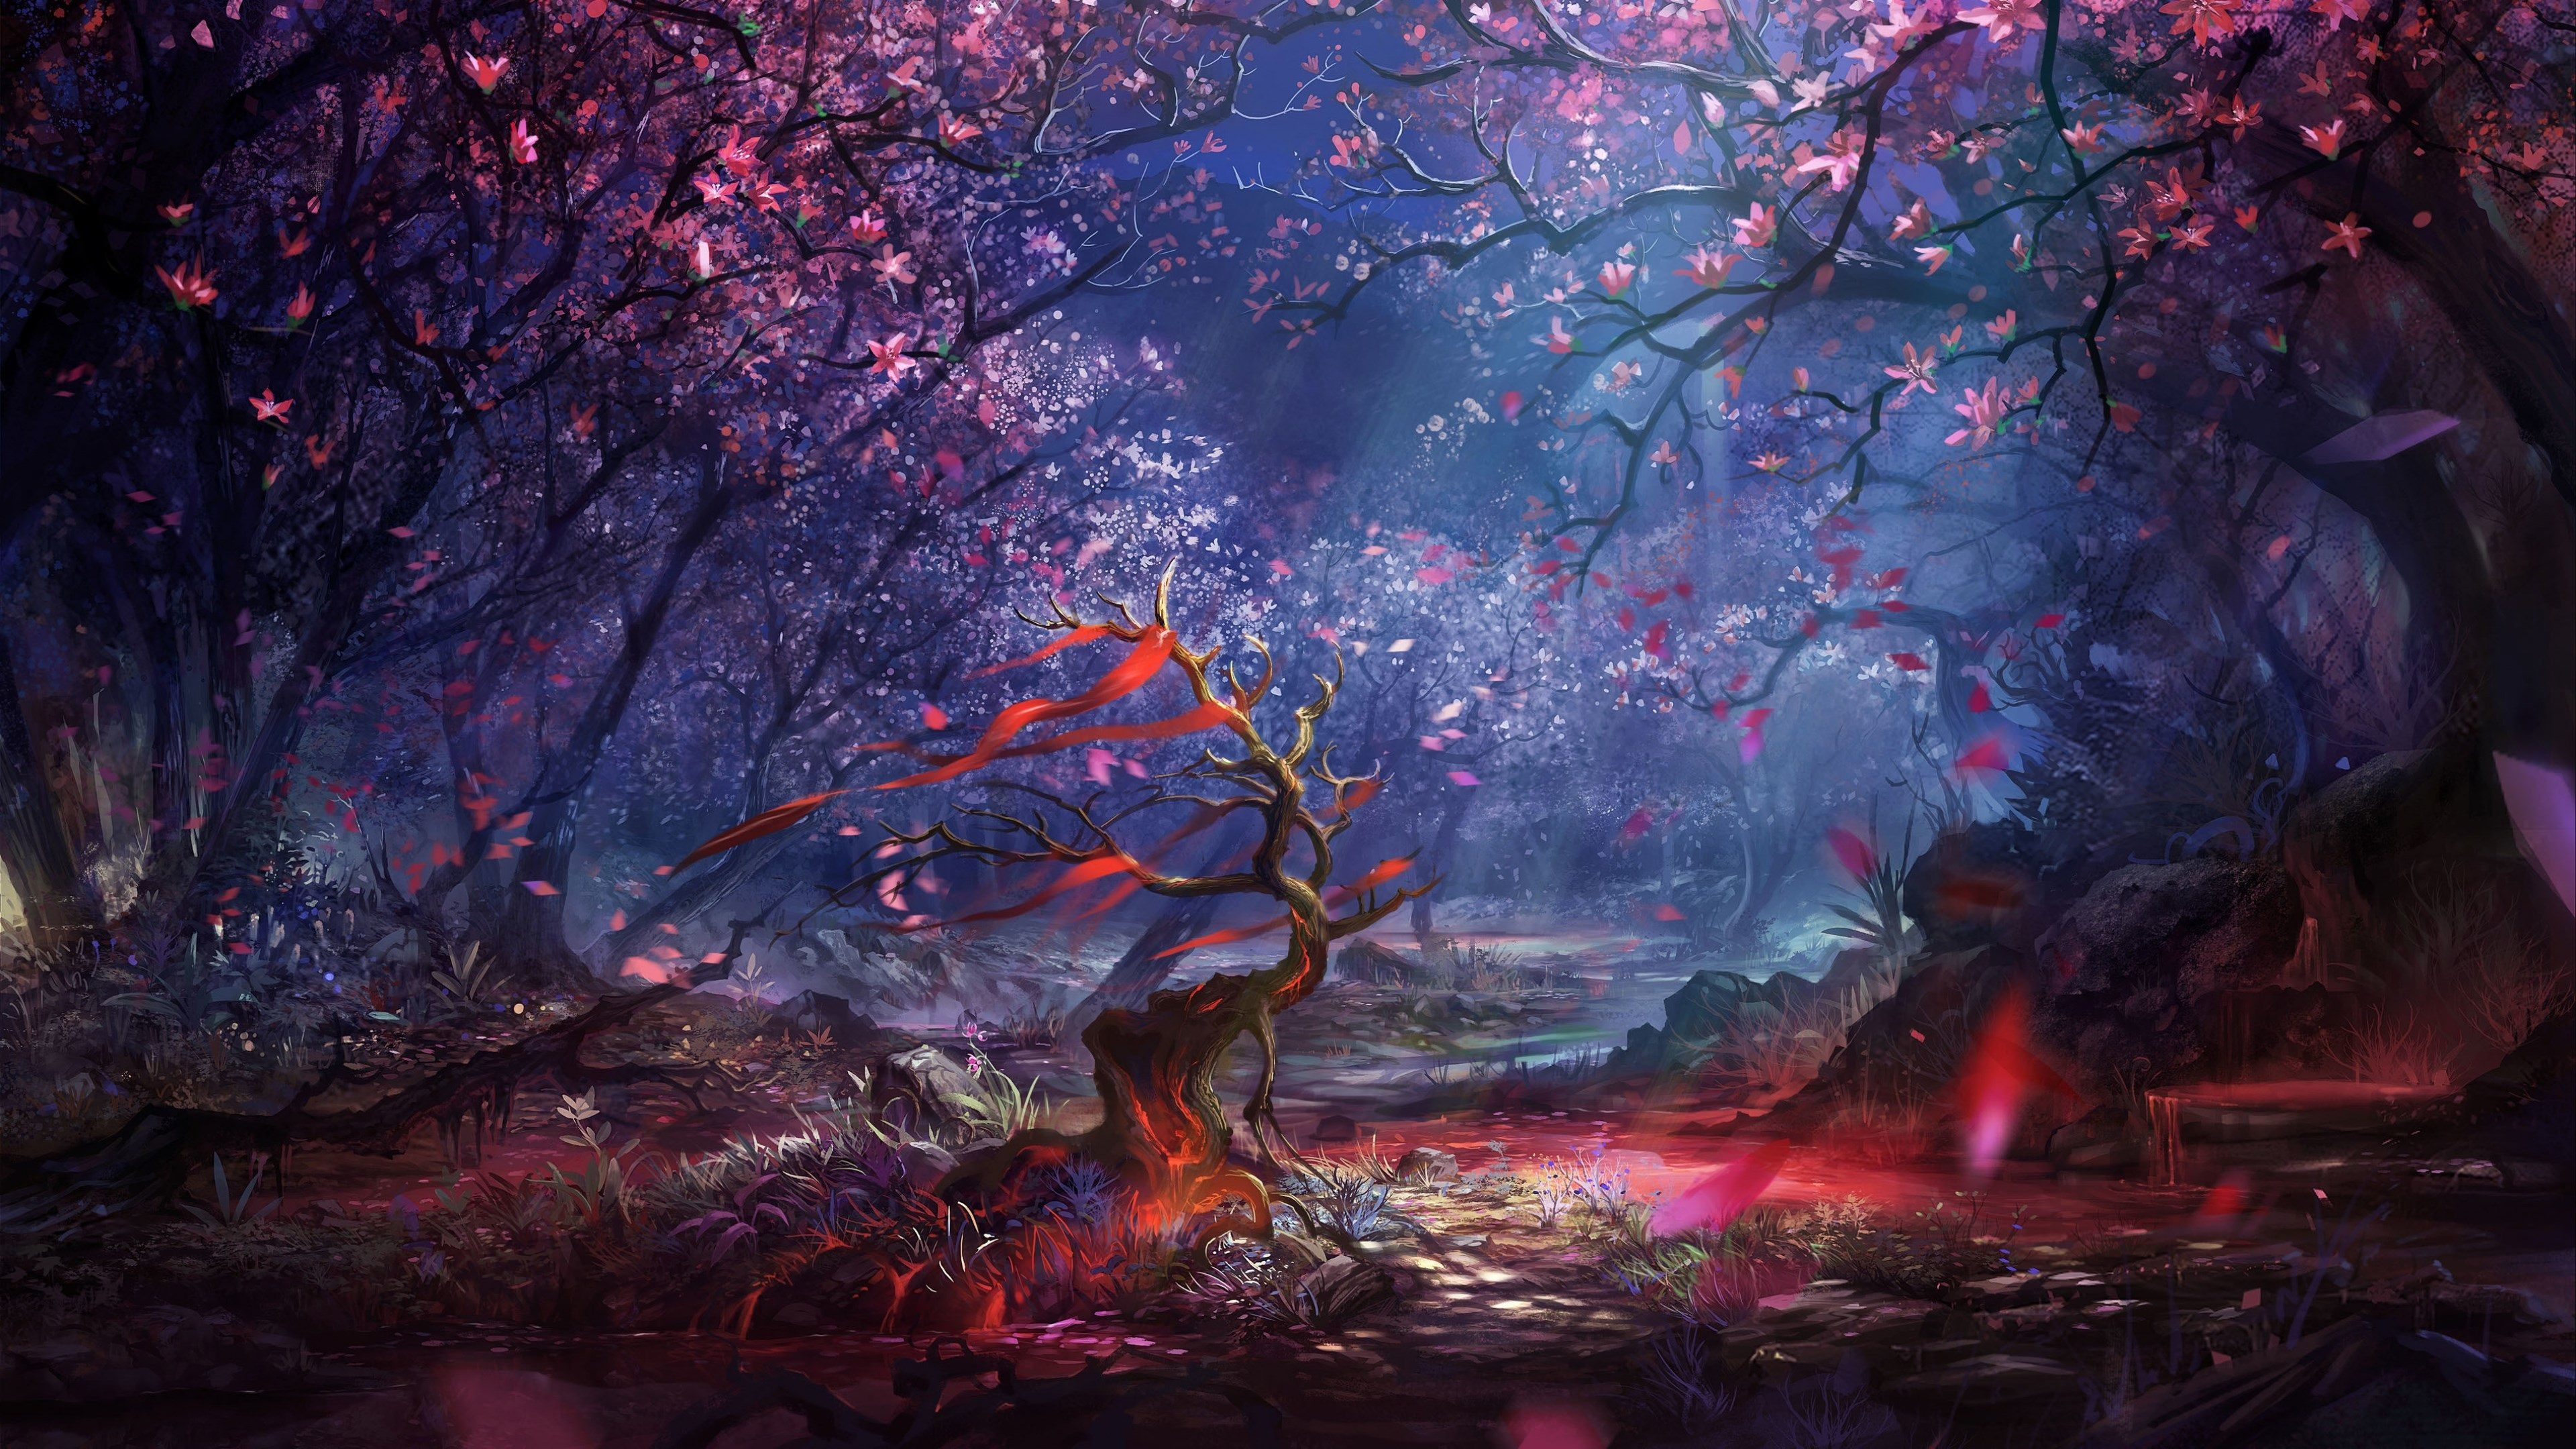 3840x2160 Forest 4k Free Hd Wallpaper Free Download In 2020 Fantasy Landscape Fantasy Art Landscapes Fantasy Forest